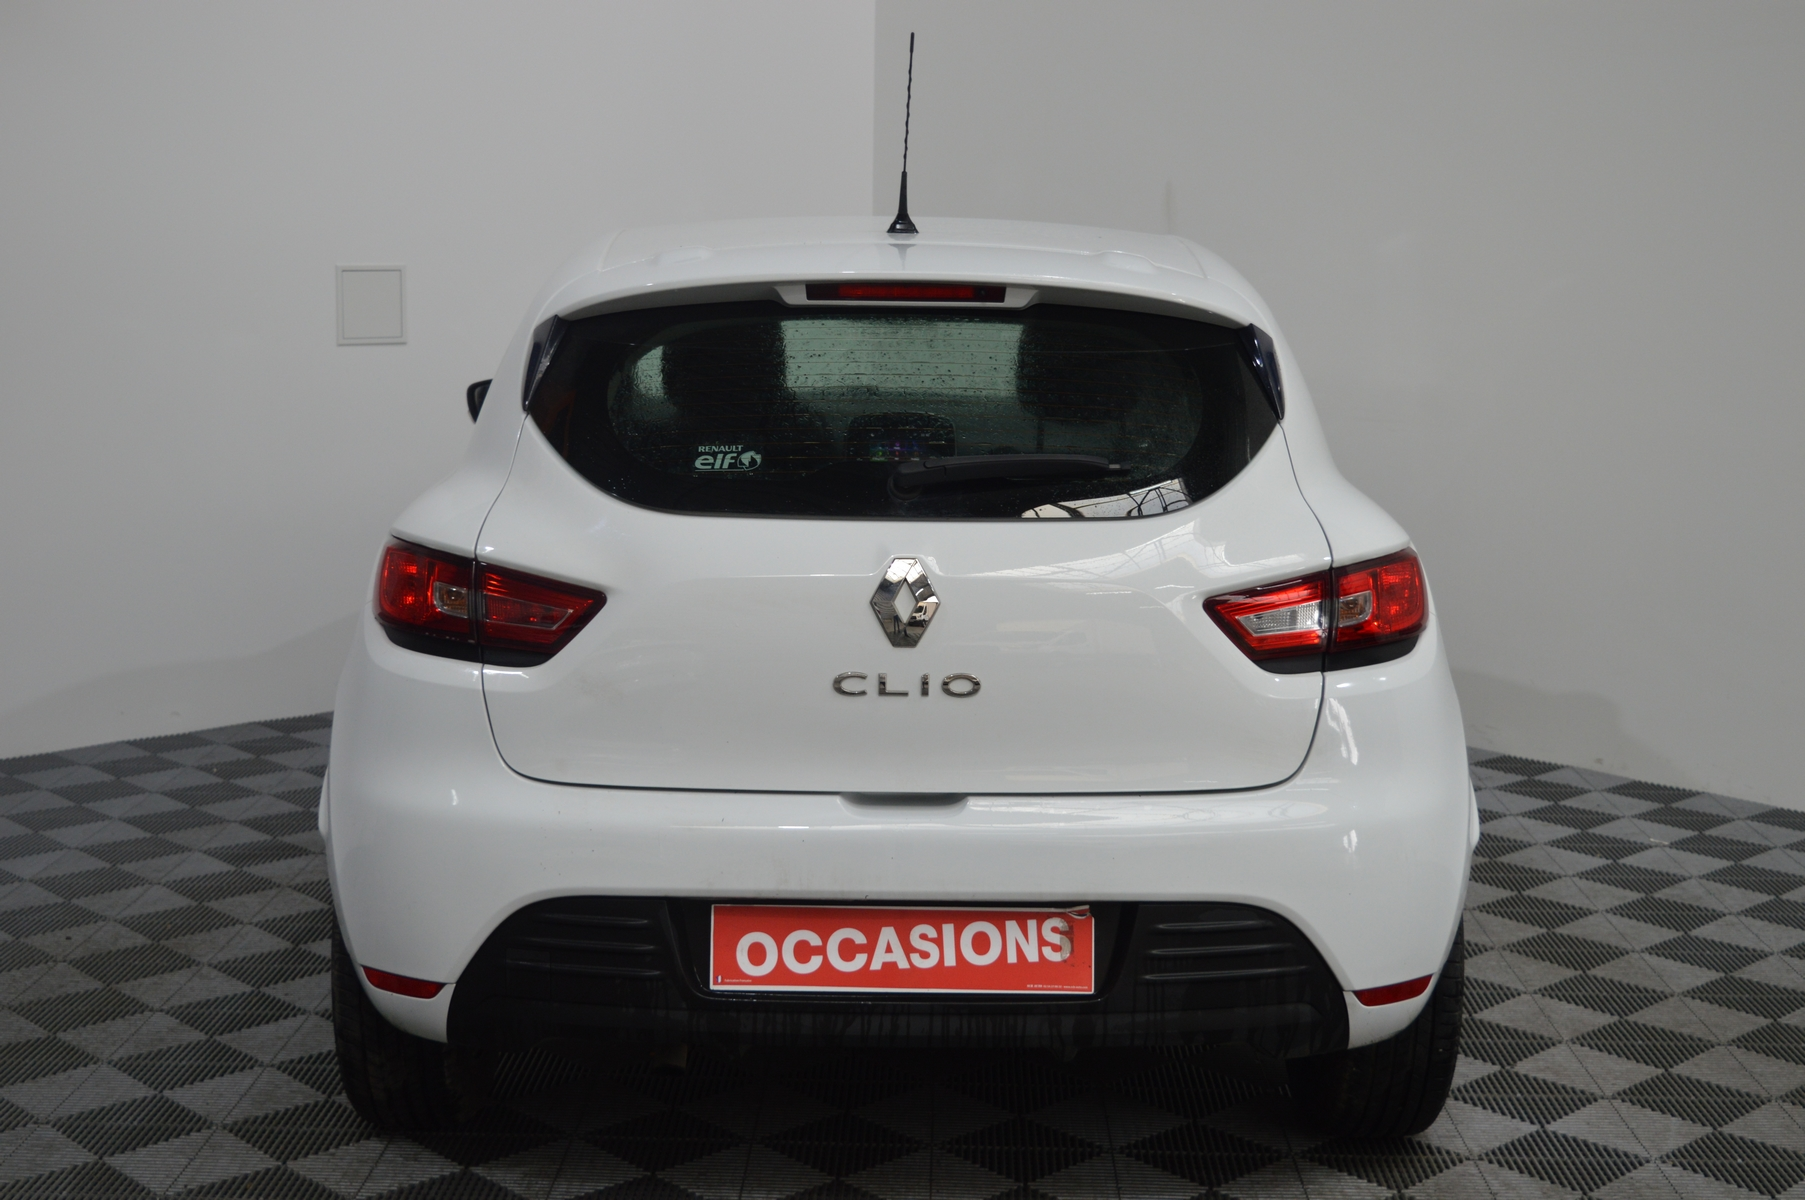 RENAULT CLIO IV SOCIETE 2018 à 7400 € - Photo n°33